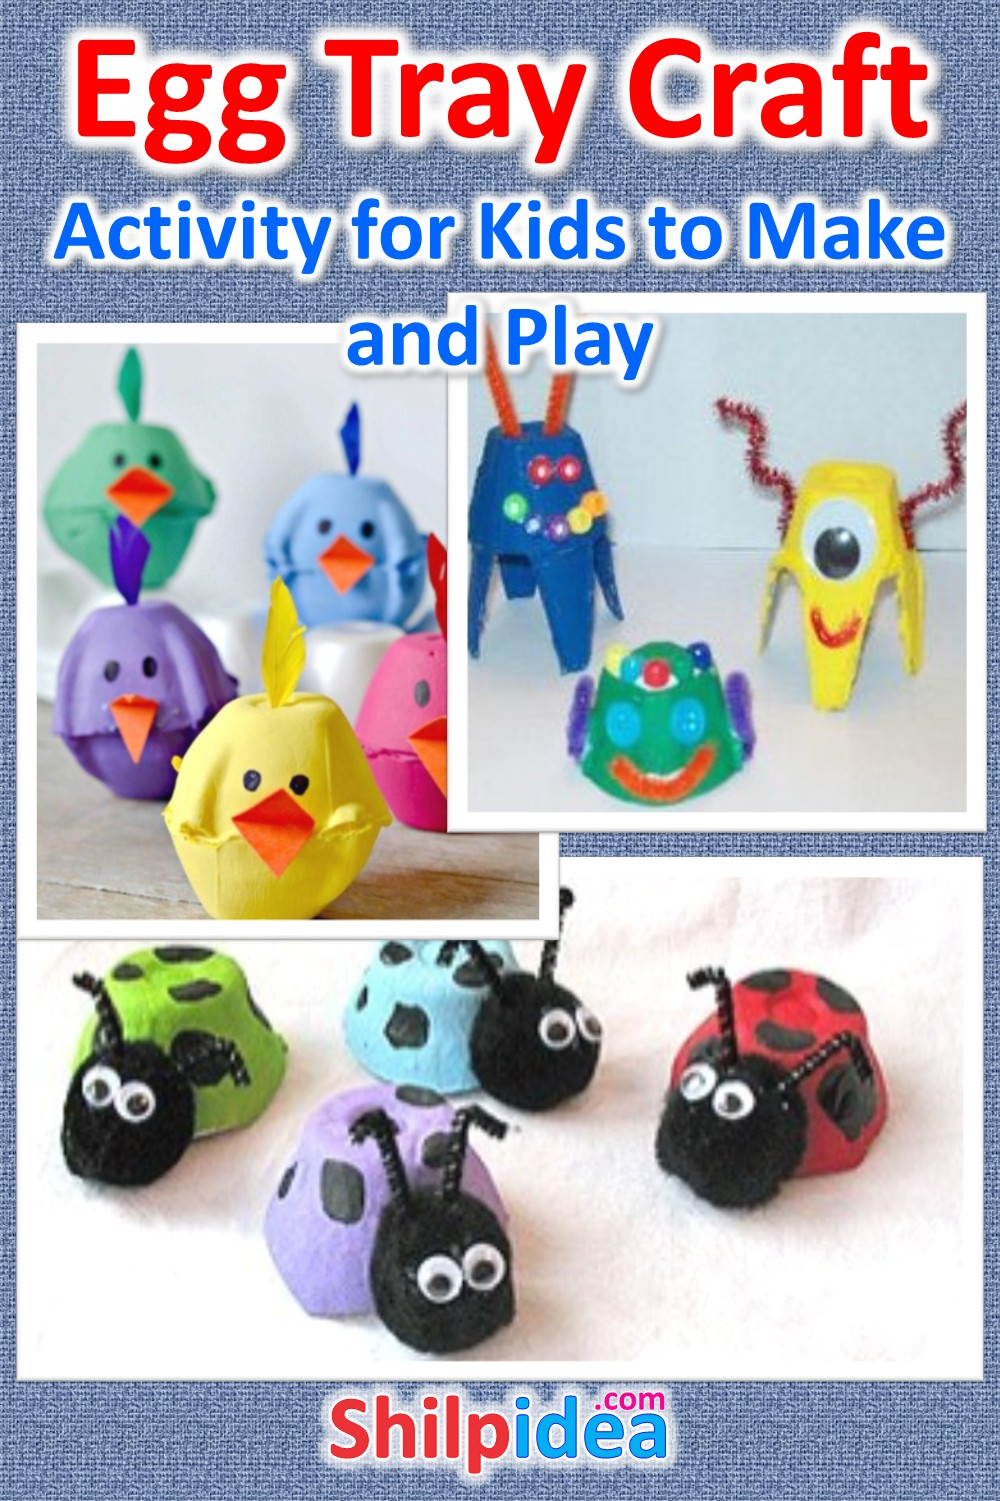 egg-tray-craft-activity-for-kids-shilpidea-pin